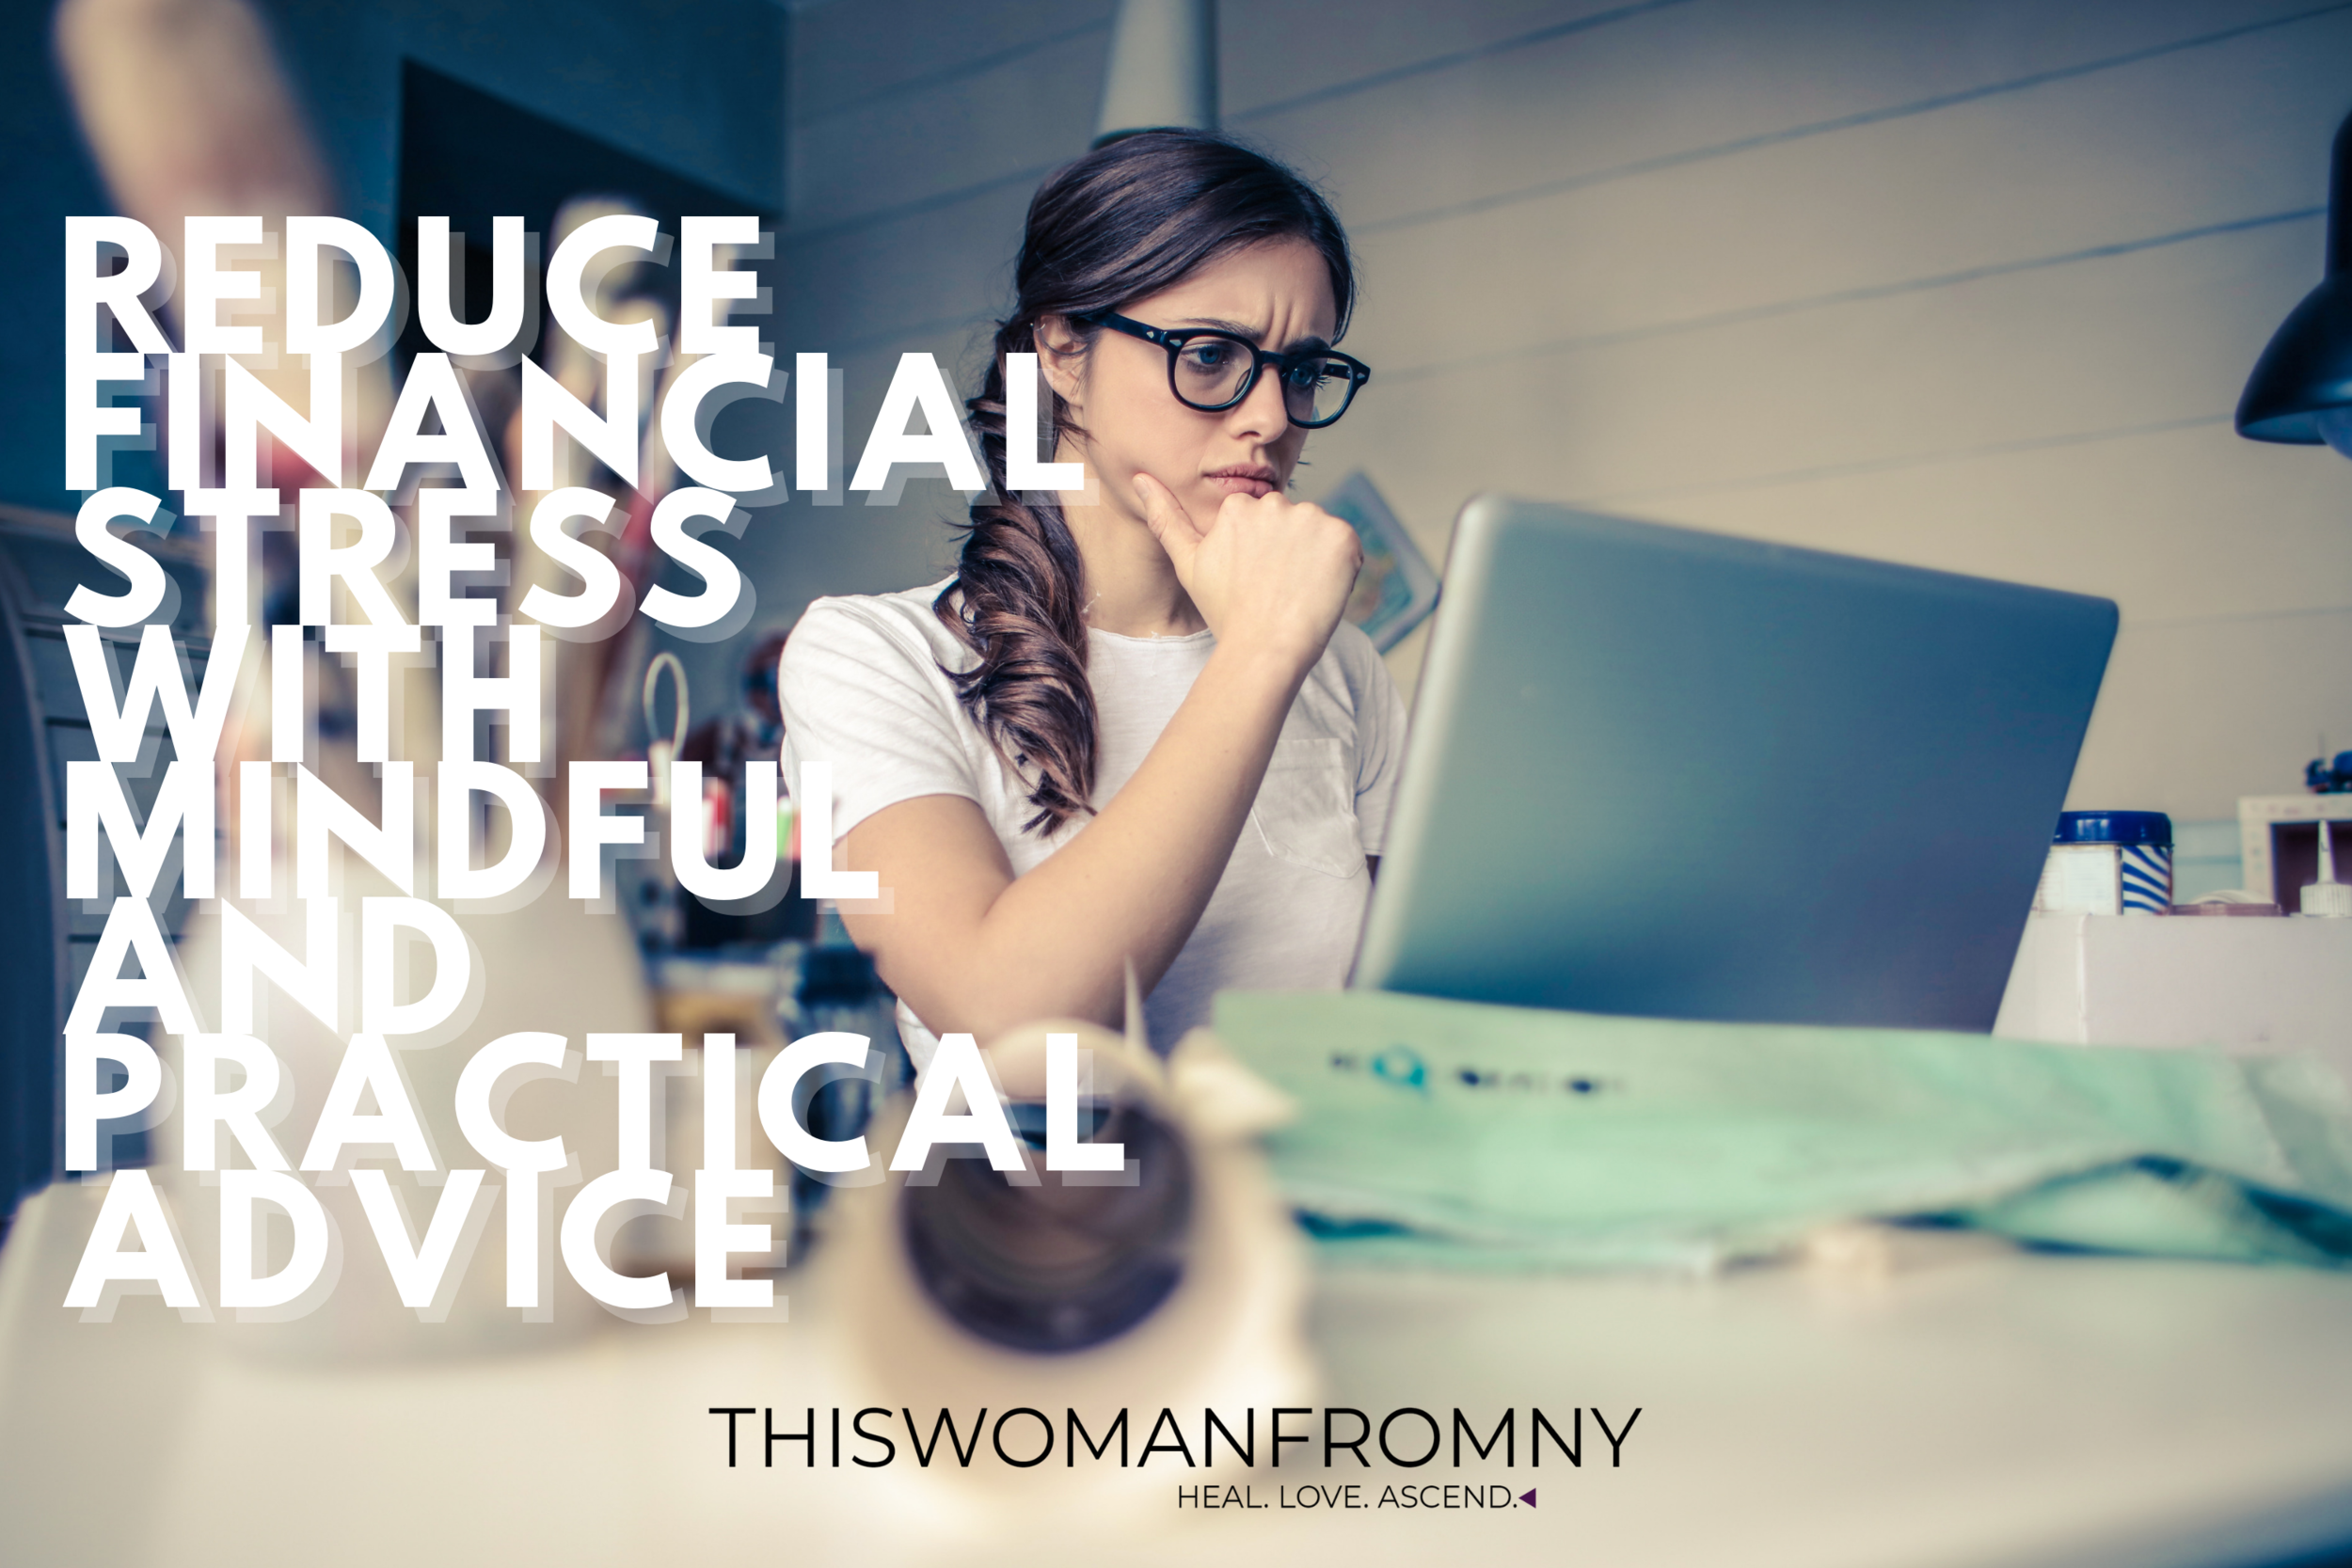 Reduce Financial Stress with Mindful and Practical Advice | THISWOMANFROMNY